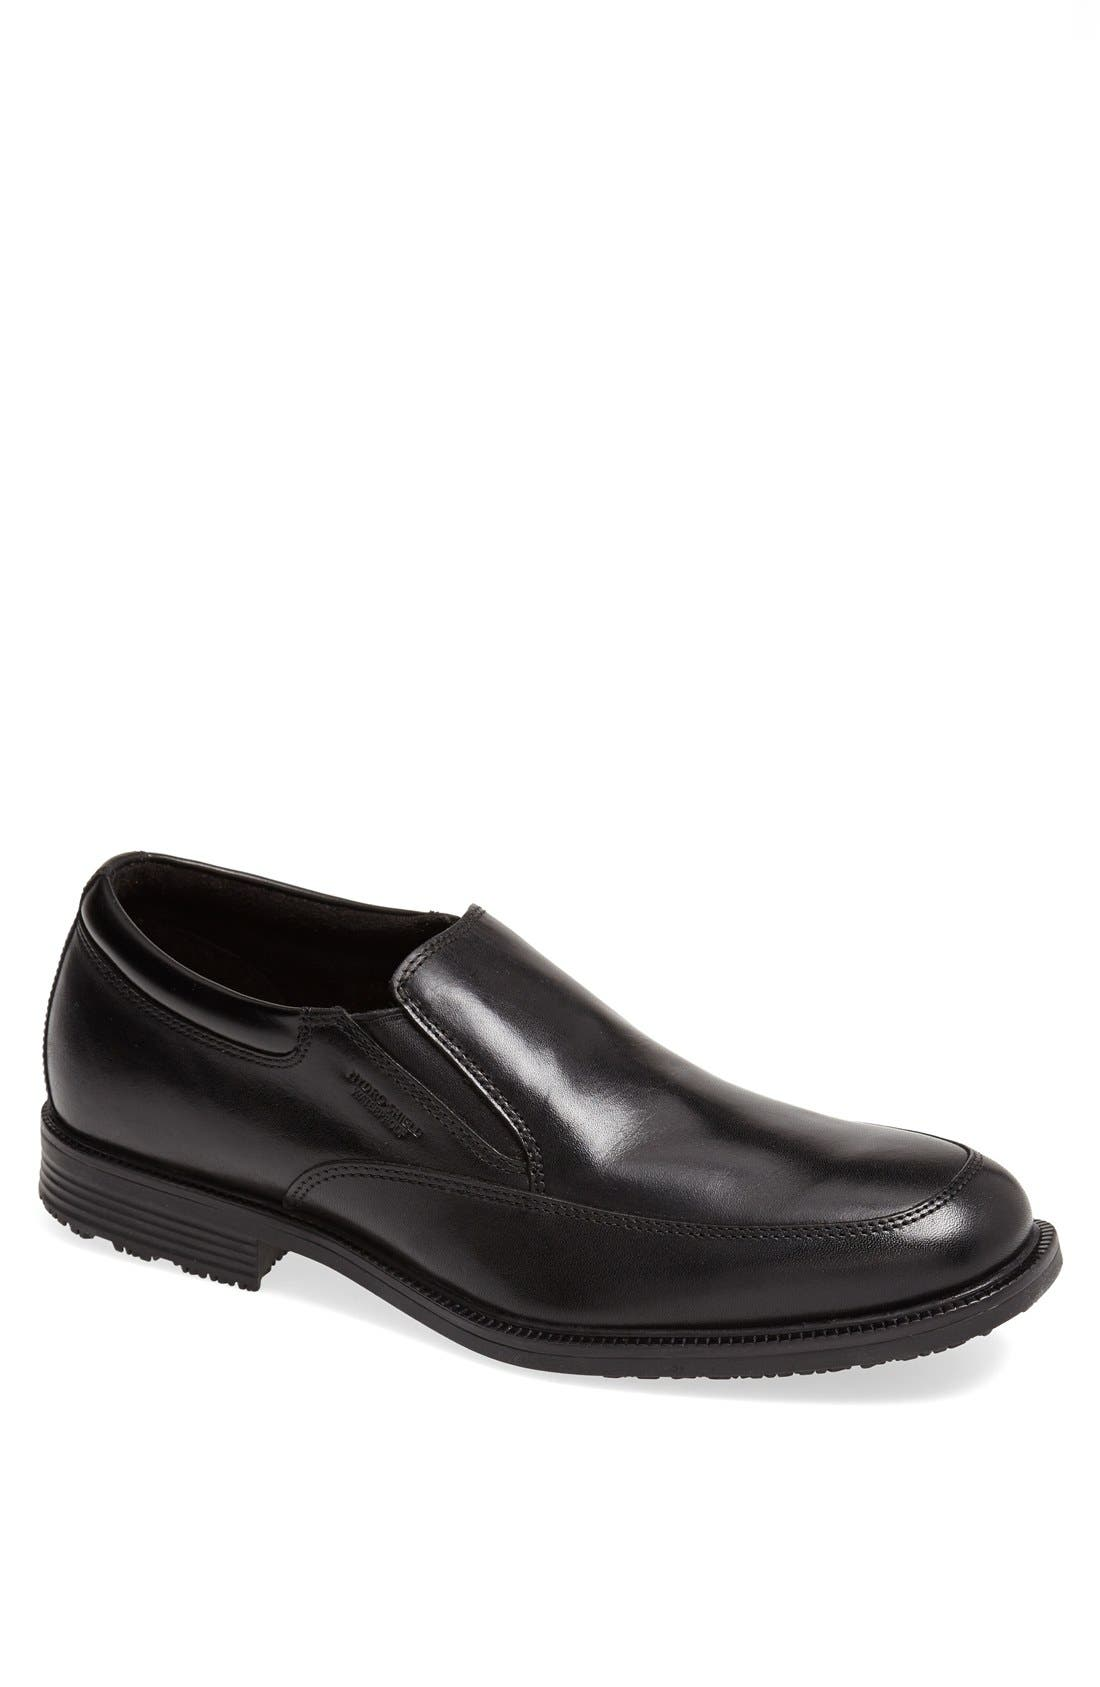 ROCKPORT, 'Essential Details' Waterproof Loafer, Main thumbnail 1, color, BLACK